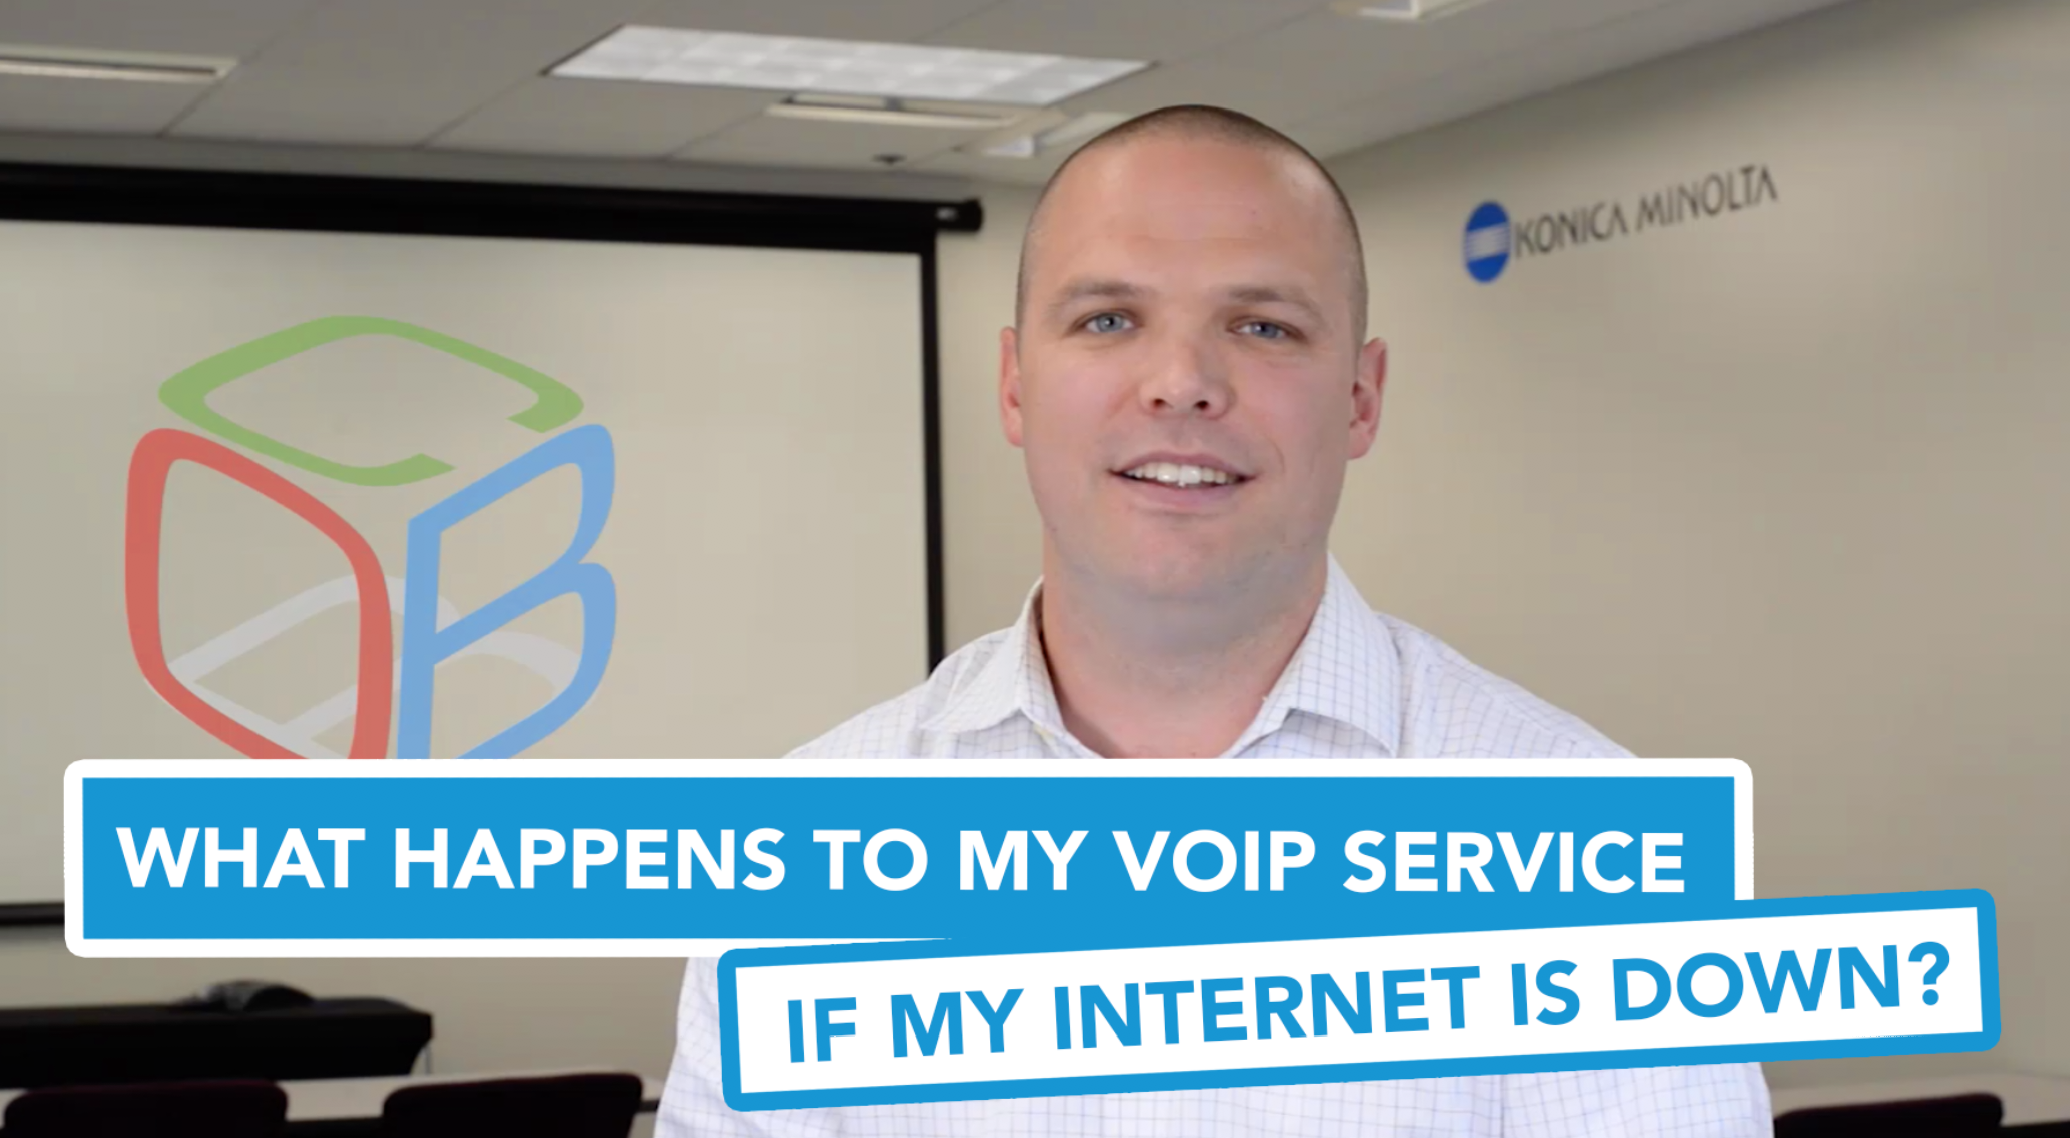 What happens to my VoIP service if my internet is down?